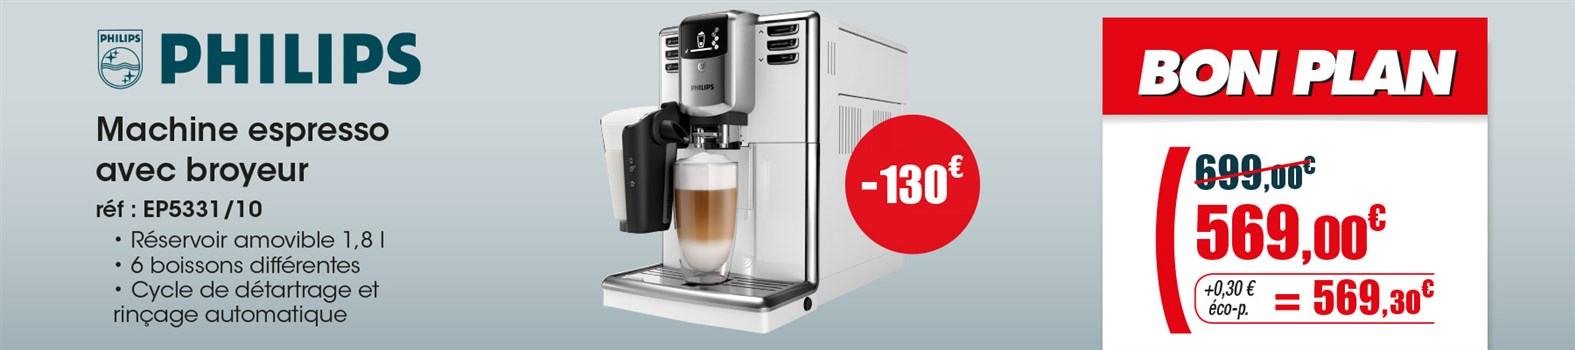 Expresso avec broyeur Philips EP5331/10